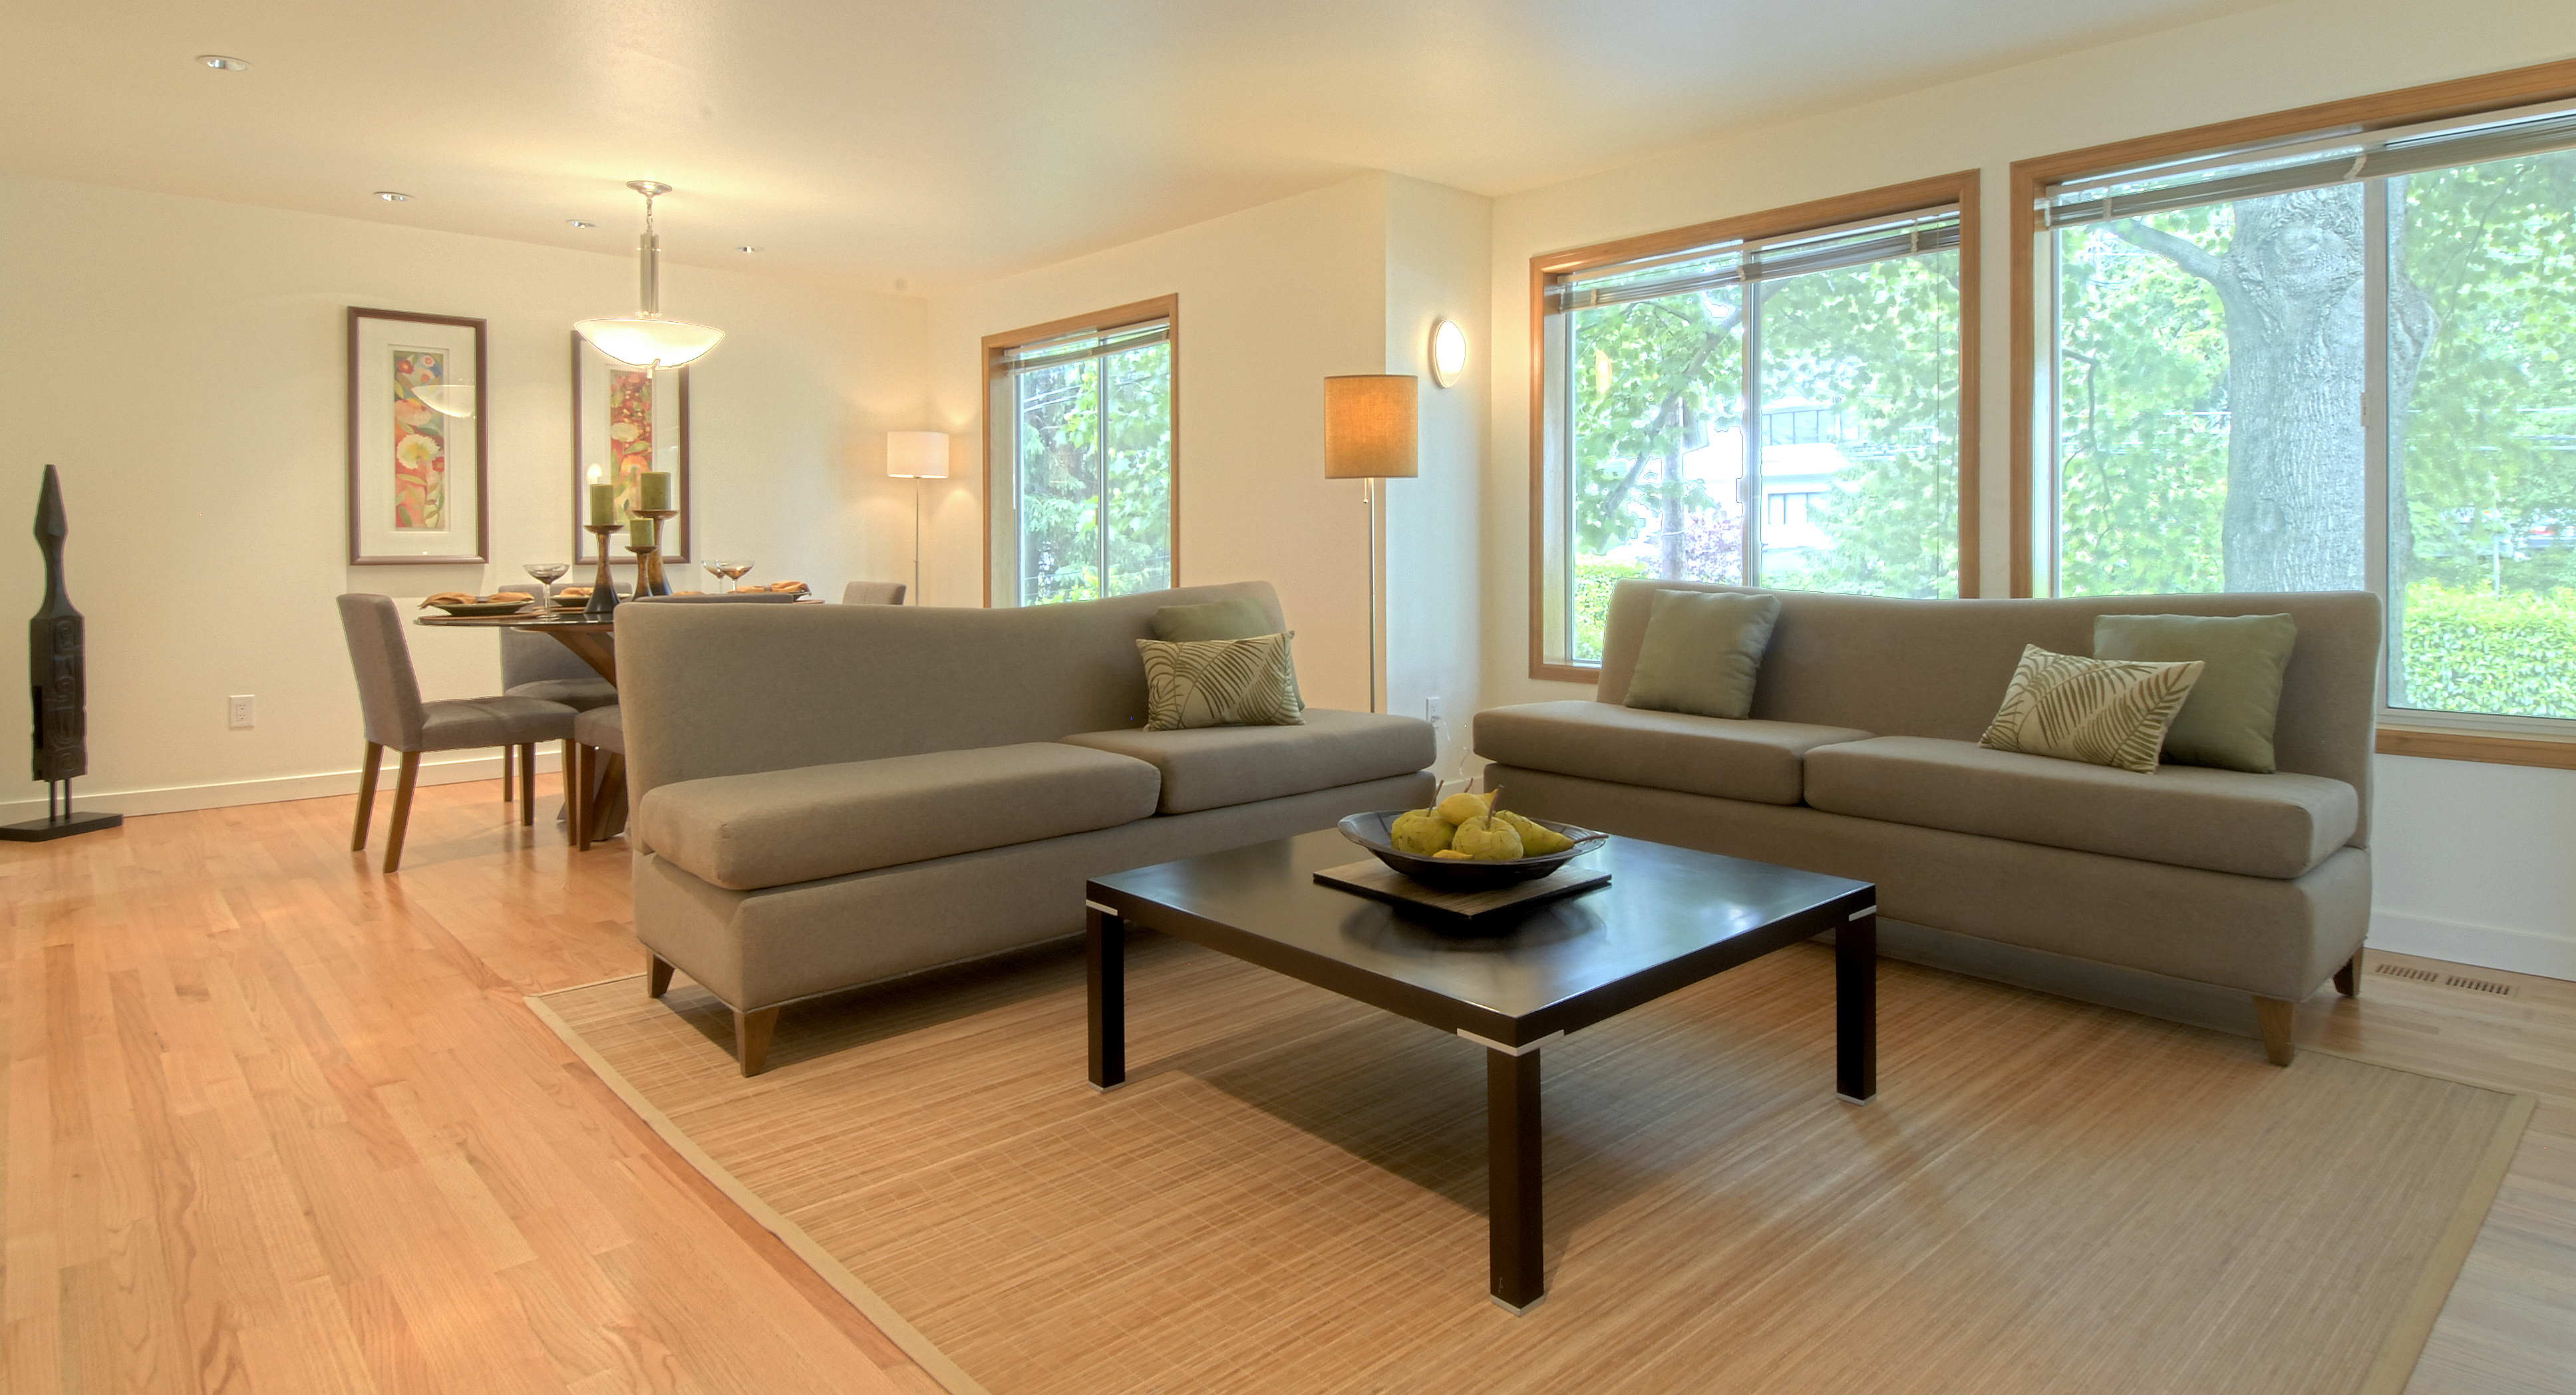 Queen anne home staging seattlestaginggroup - Home and living ...